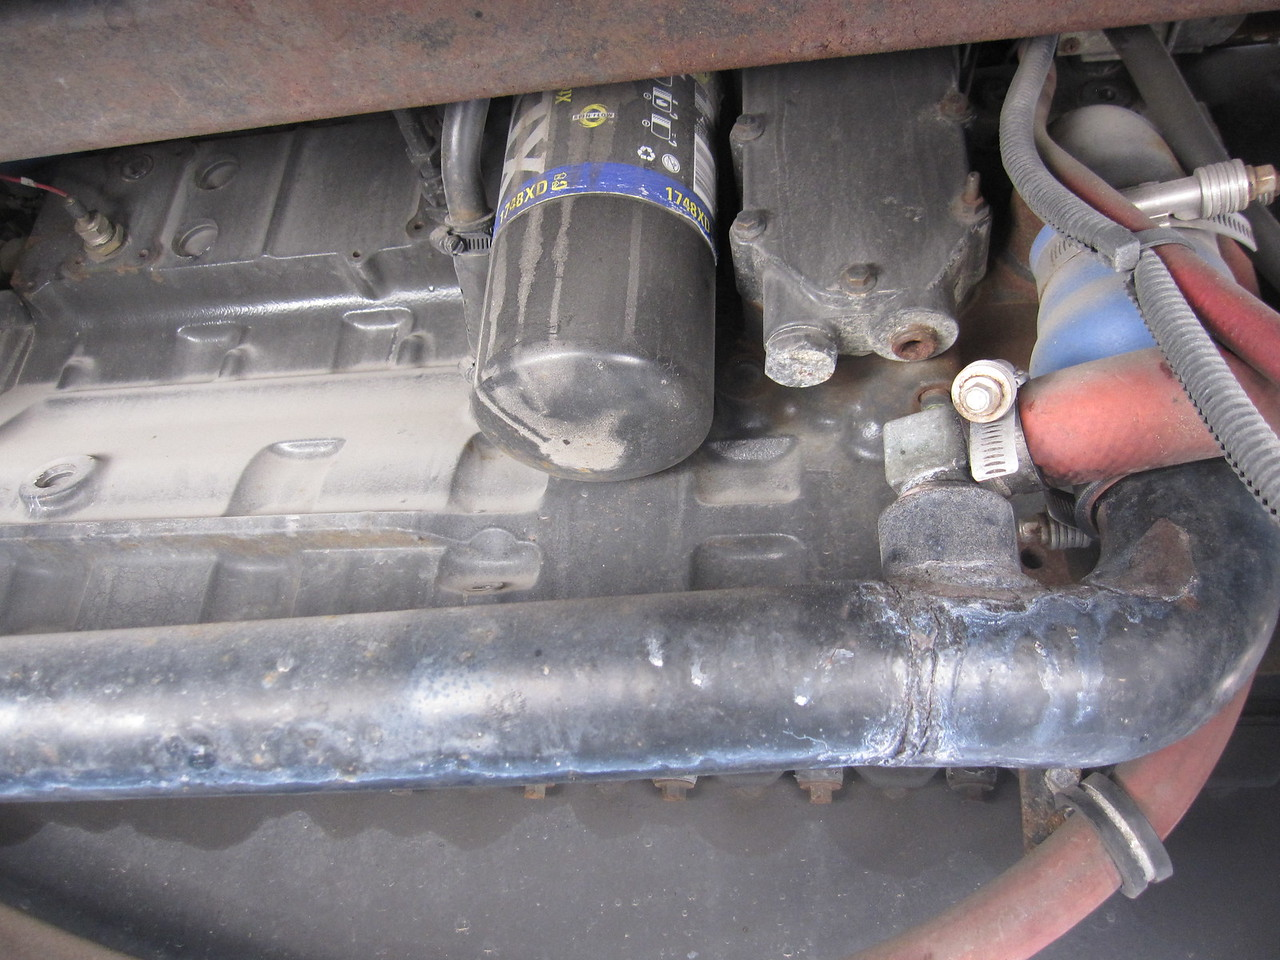 """Several years of coolant drips leave silicate residue on the bottom of this pipe.  It connects the engine water jacket to the radiator.  Two """"take off"""" connections are part of this pipe.  One runs to the filler/expansion tank (shown) and the other runs forward to the dash heat exchanger (out of photo)."""